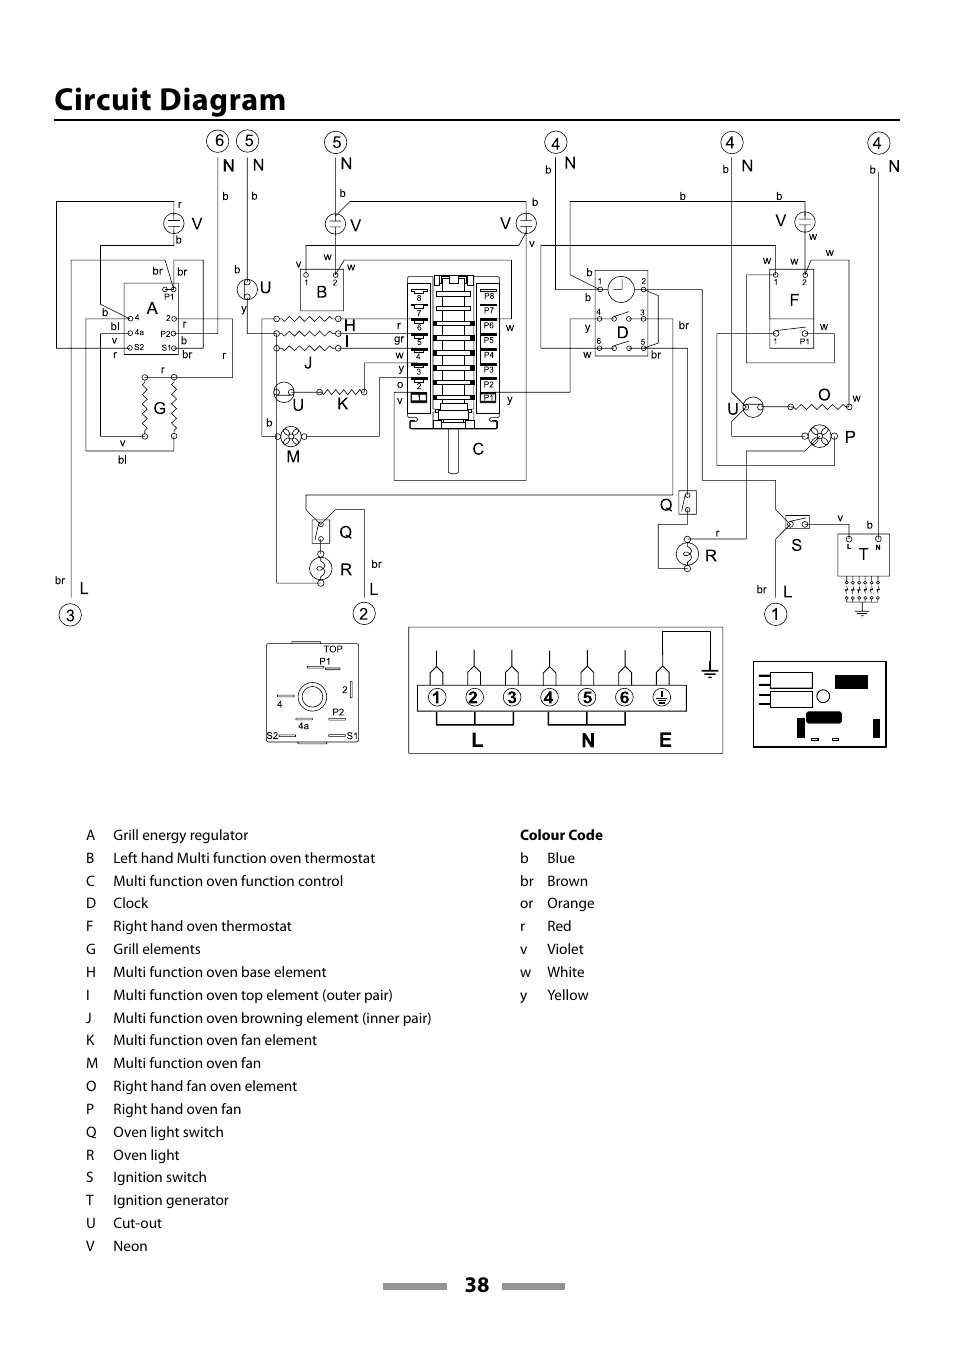 110 Volt Stove Spark Wiring Diagram Electrical Diagrams Circuit Rangemaster Dual Fuel U109600 02 User Manual To 220